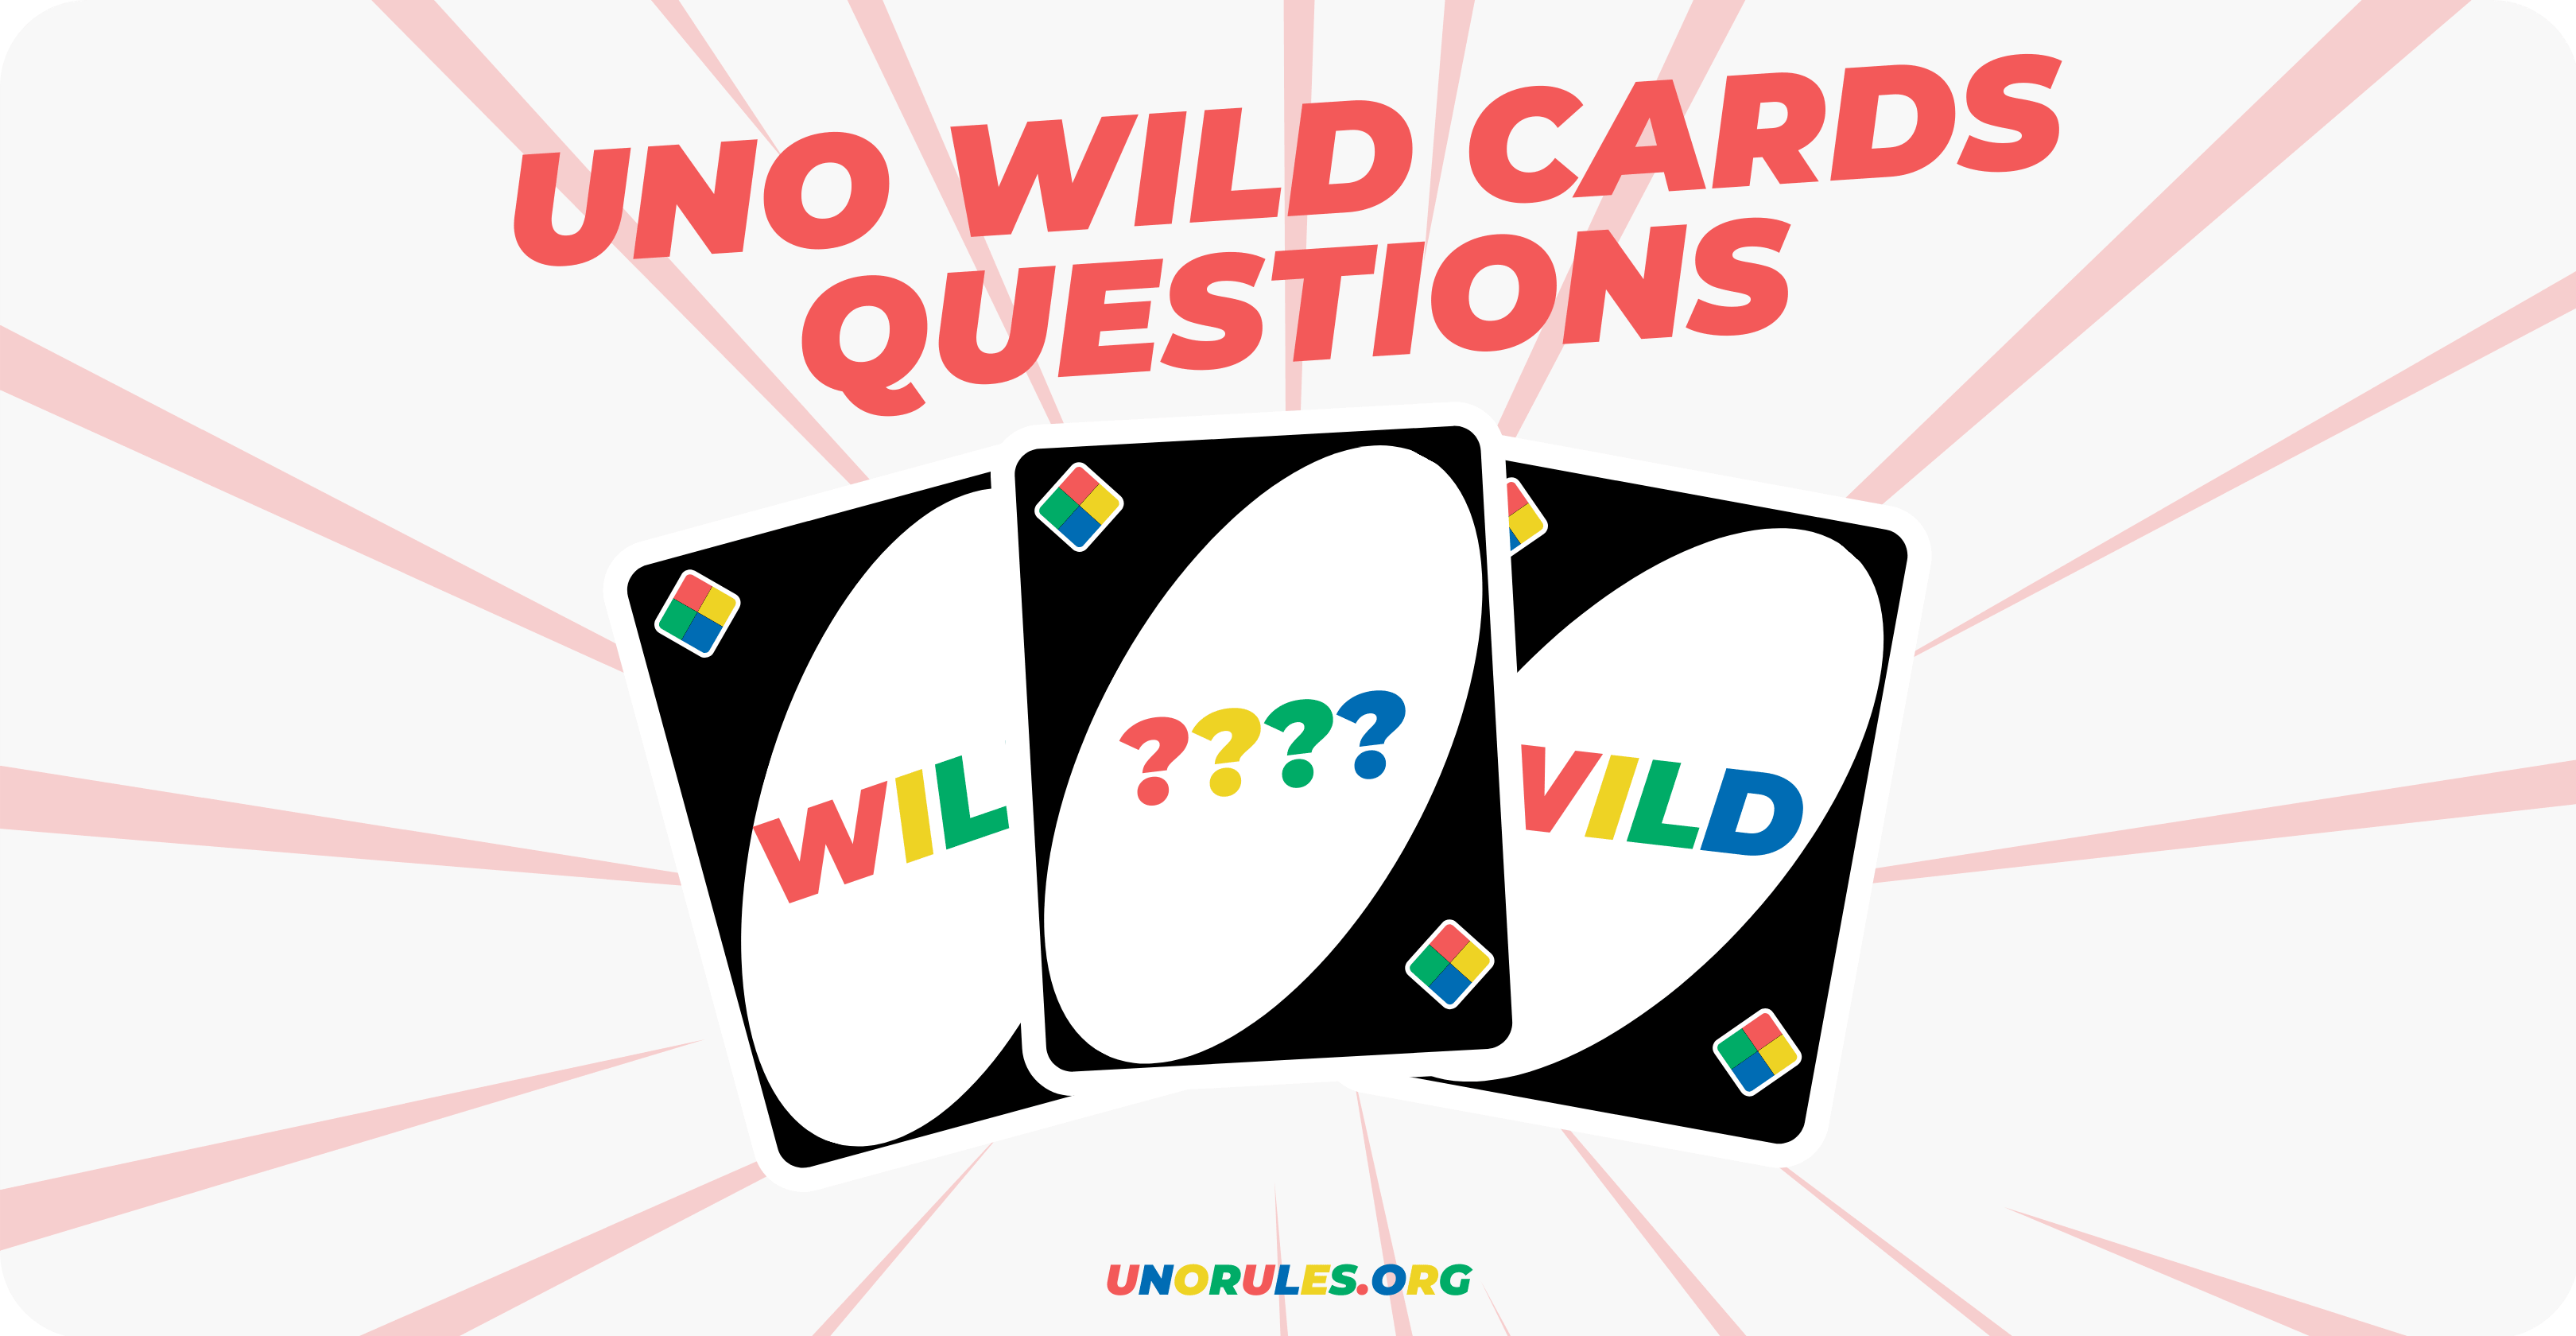 Uno Wild card questions